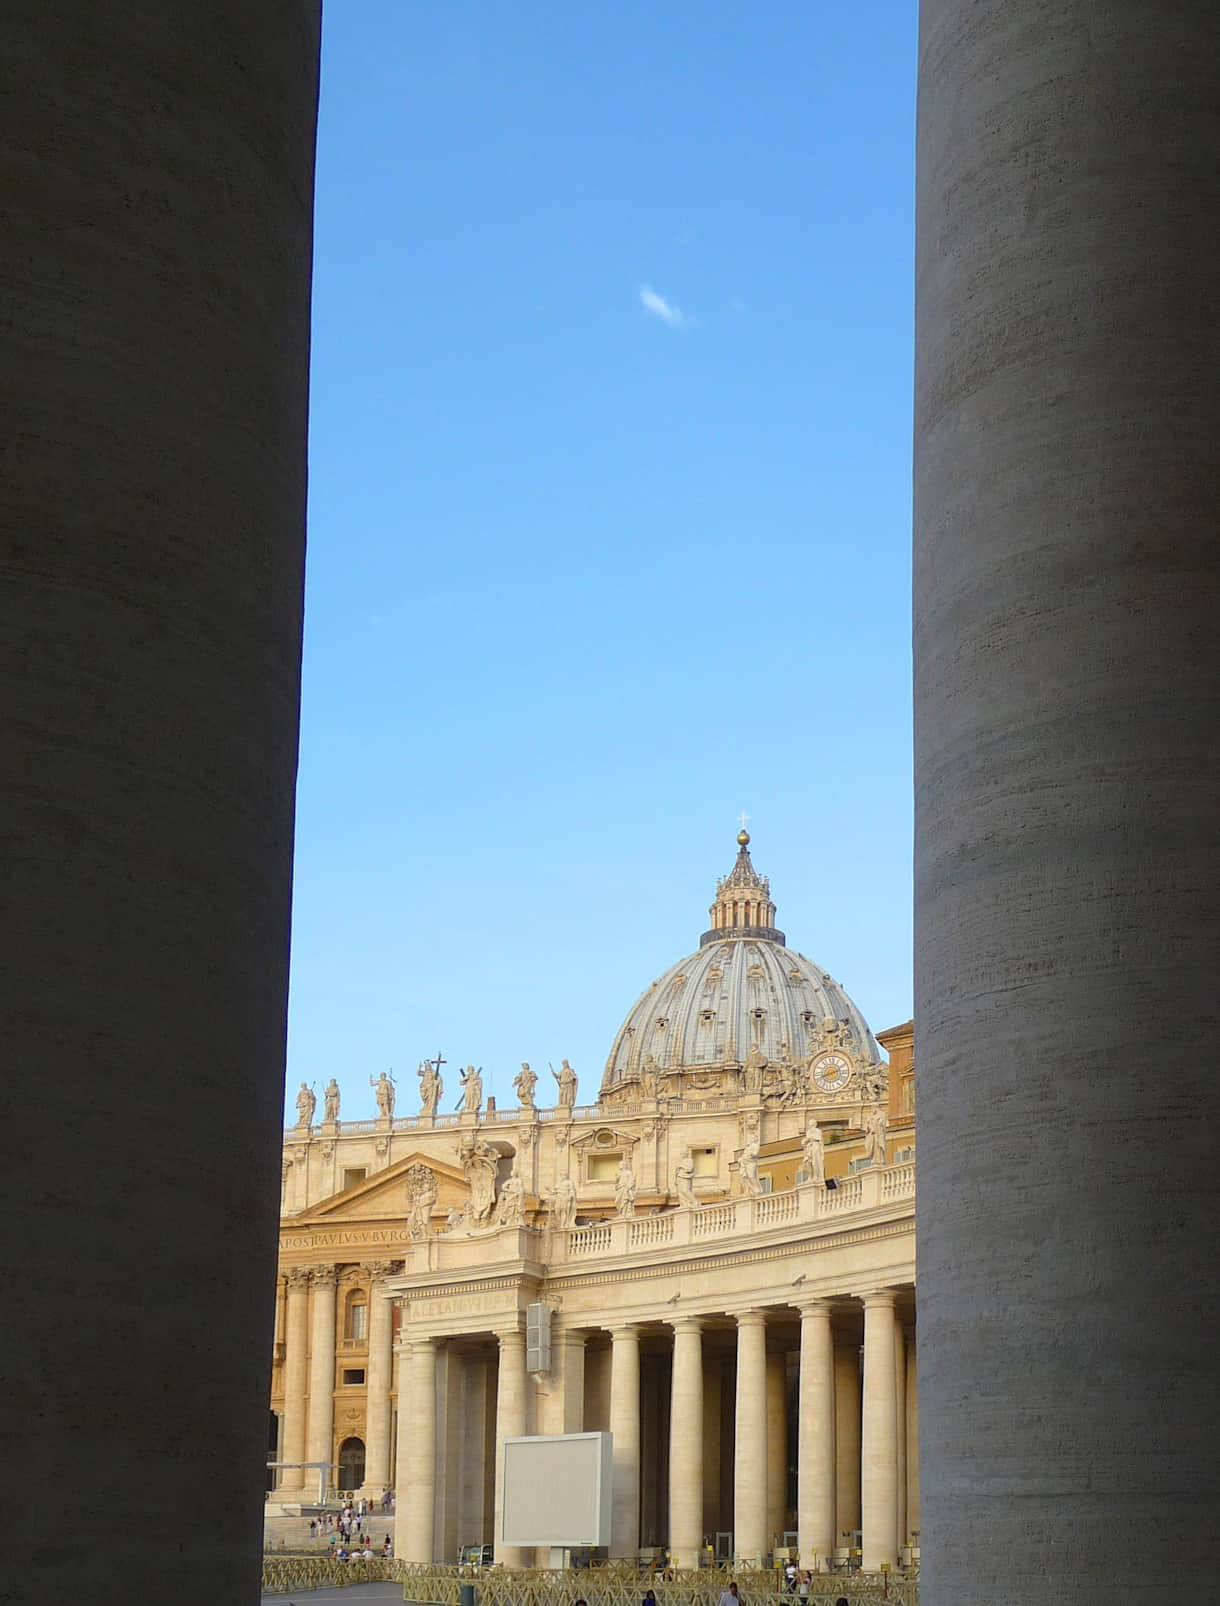 The Basilica of St. Pietro view from the colonnade.